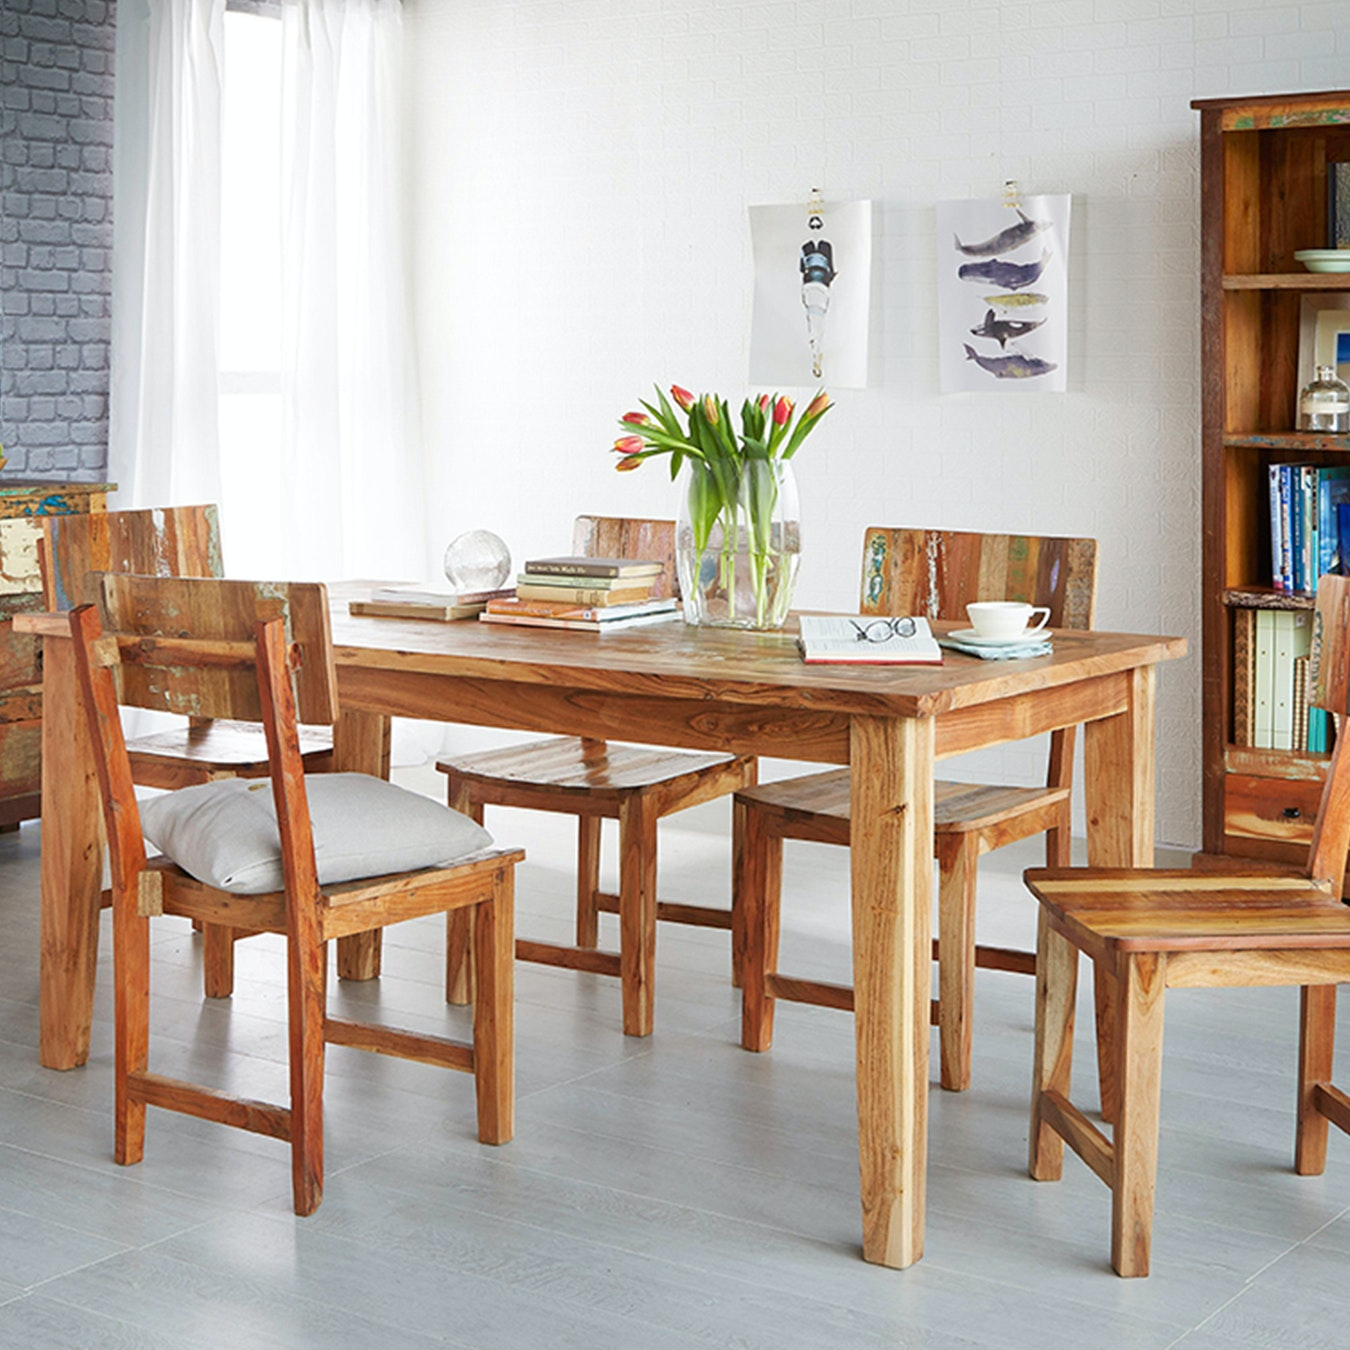 Large Reclaimed Wood Dining Table By